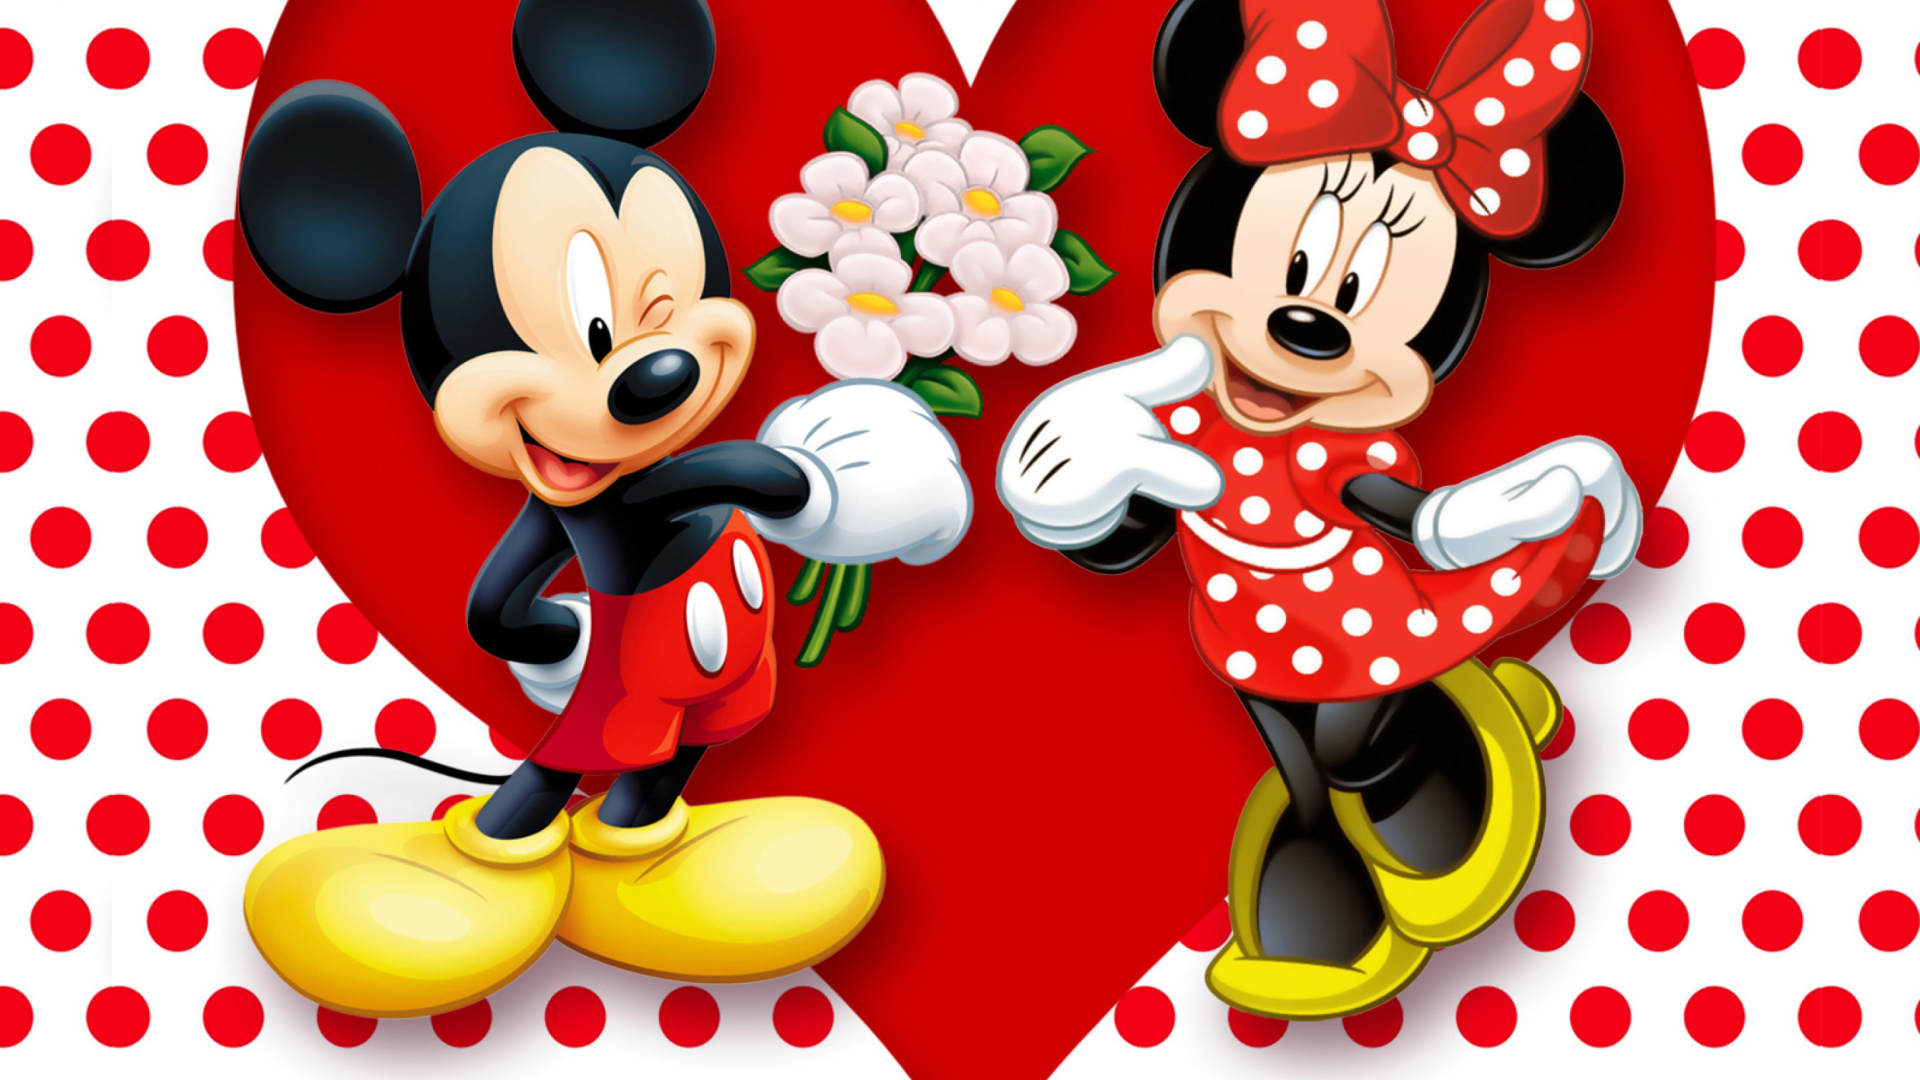 Minnie mouse mickey mouse pictures - Minni et mickey ...